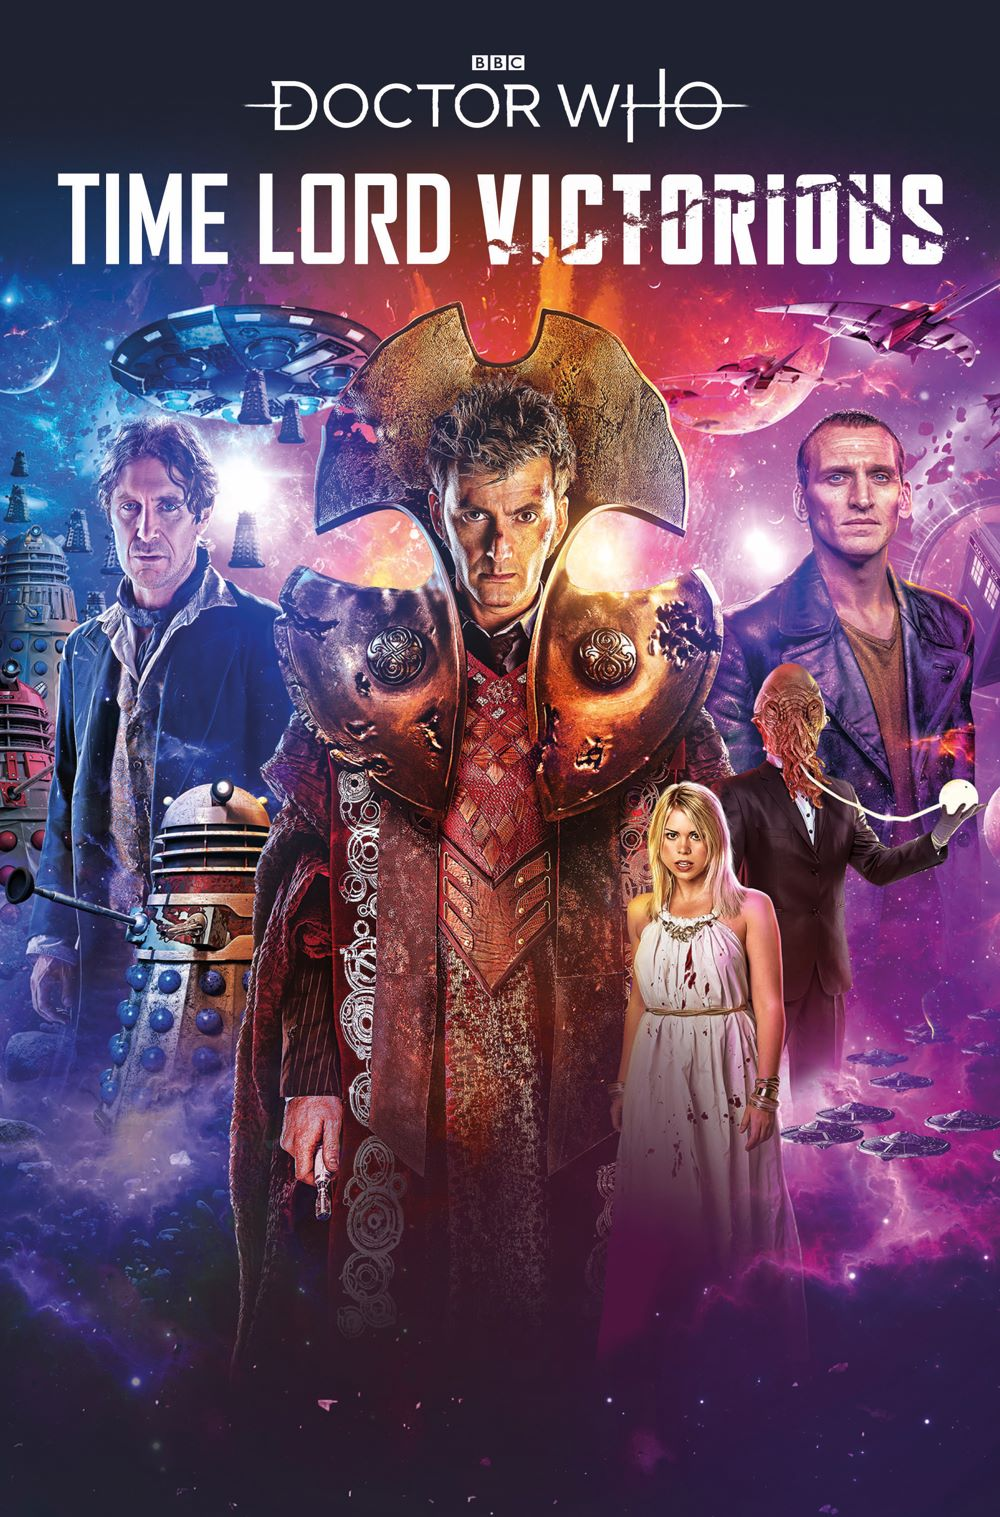 DOCTOR-WHO-TIME-LORD-VICTORIOUS-1-COVER-A-LEE-BINDING ComicList: Titan Comics New Releases for 09/02/2020